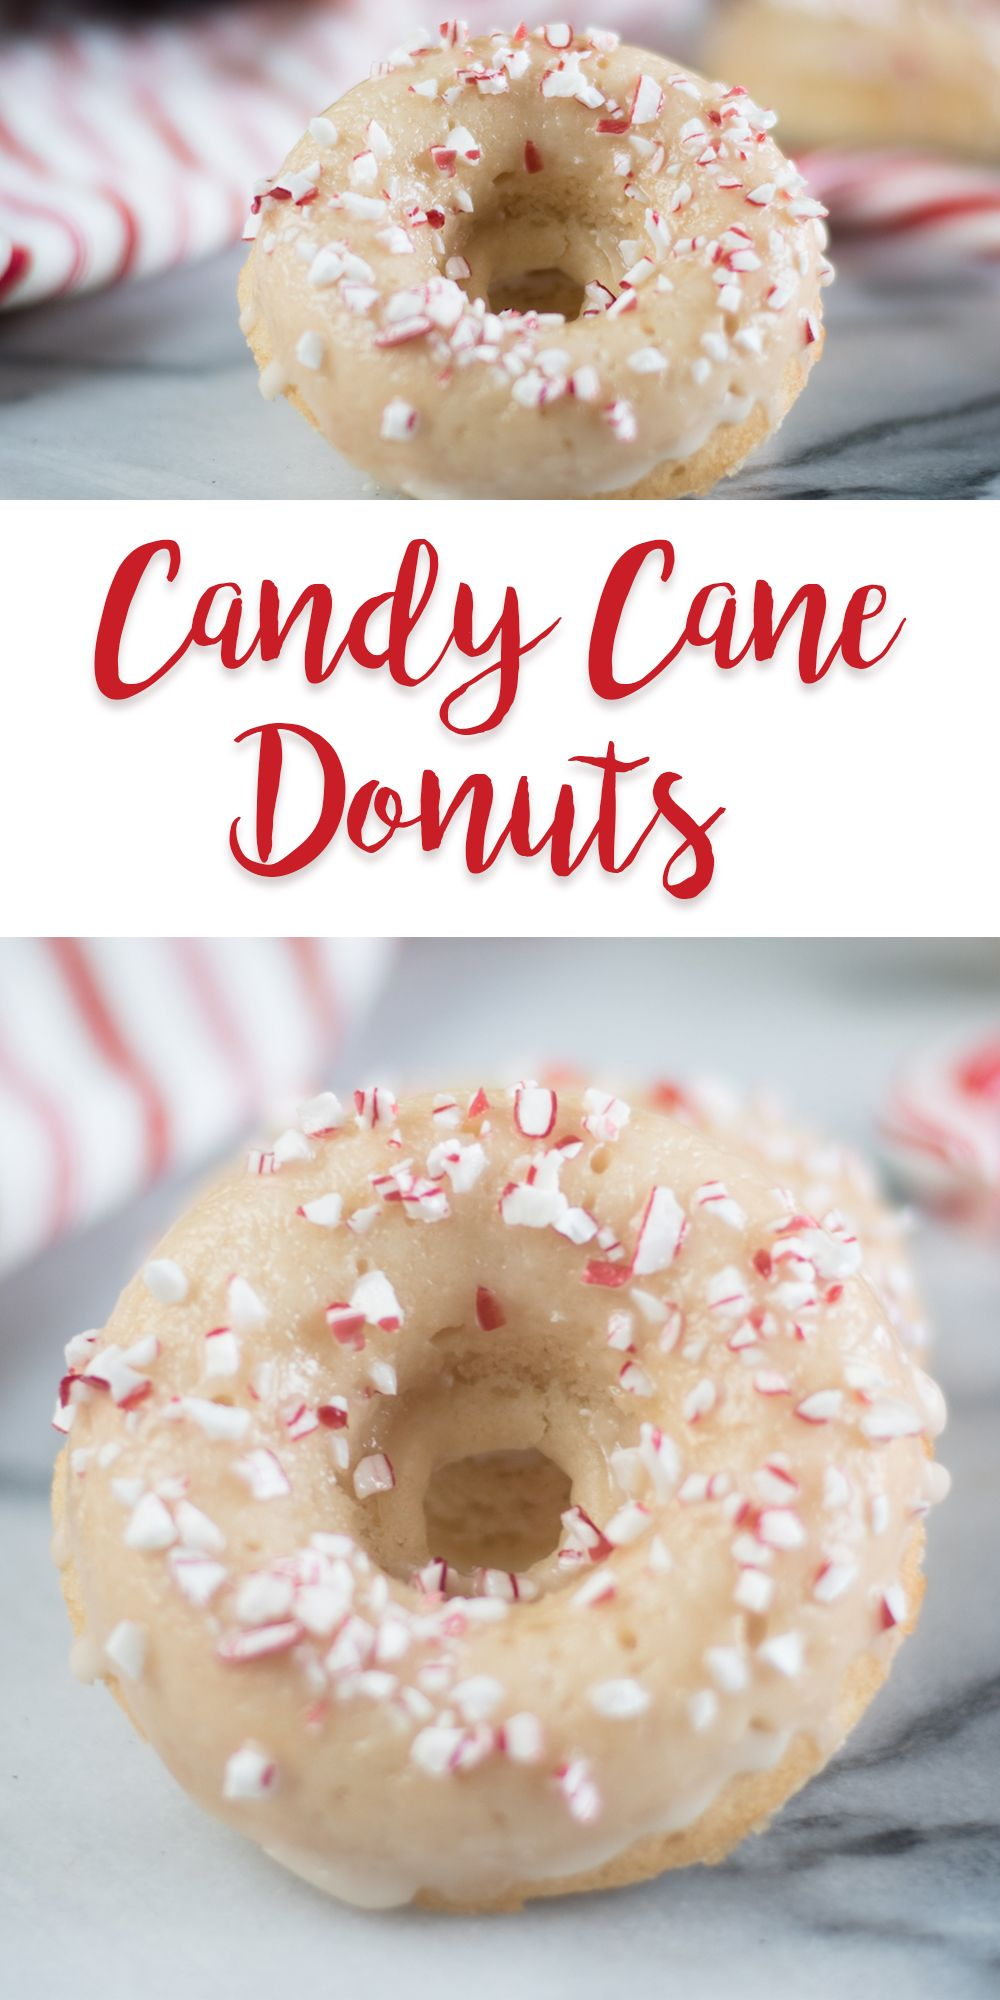 Candy Cane Donuts